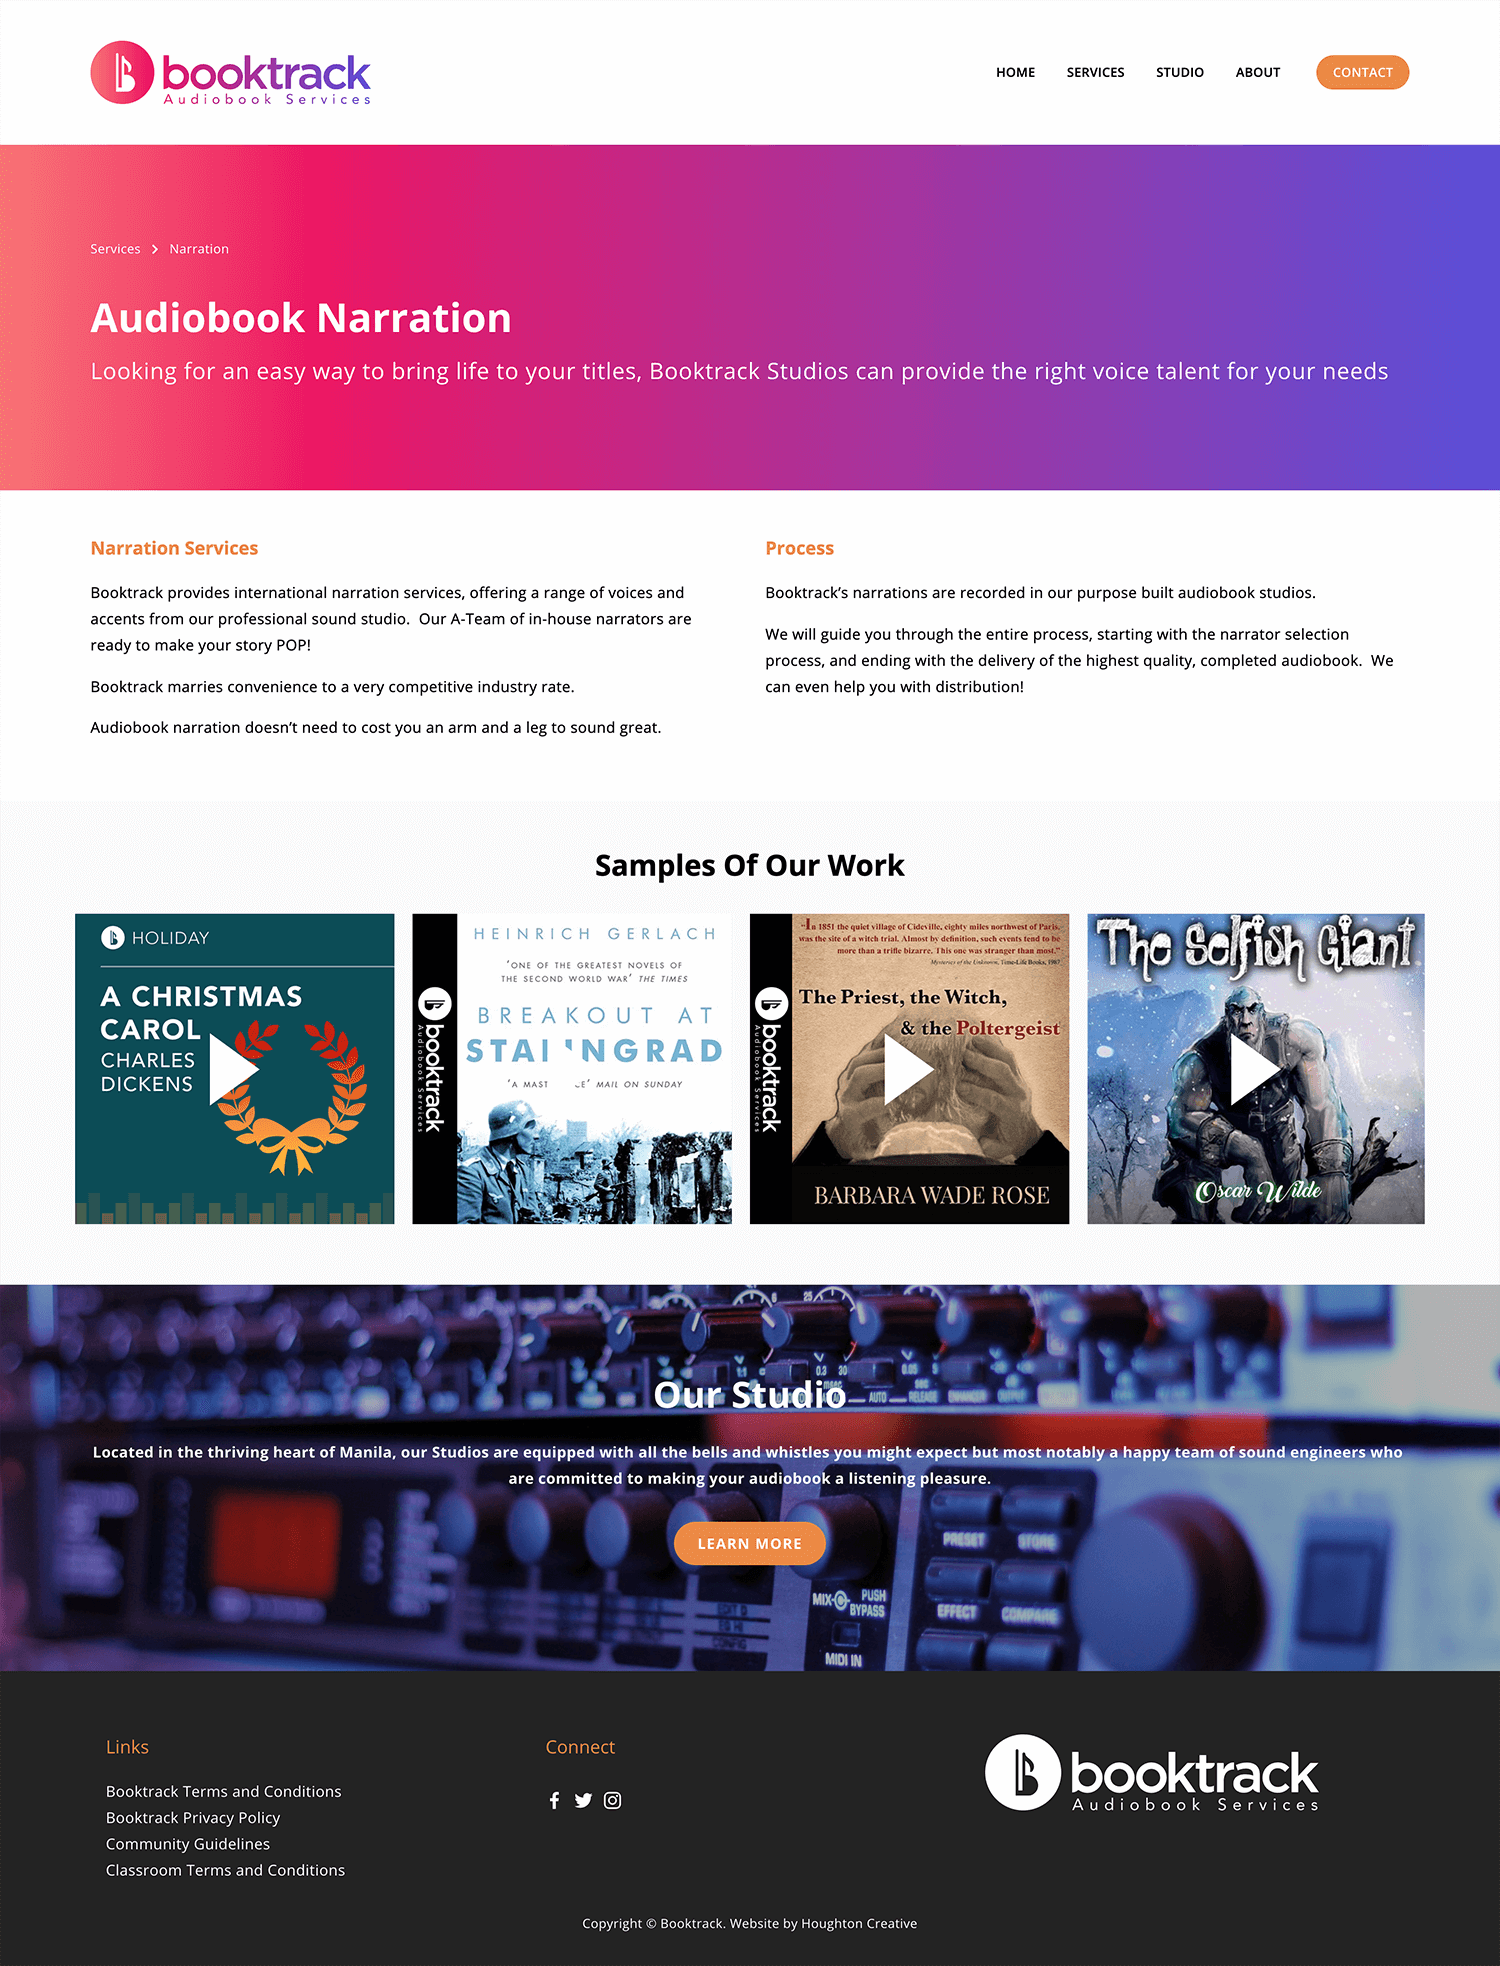 Booktrack Narration page